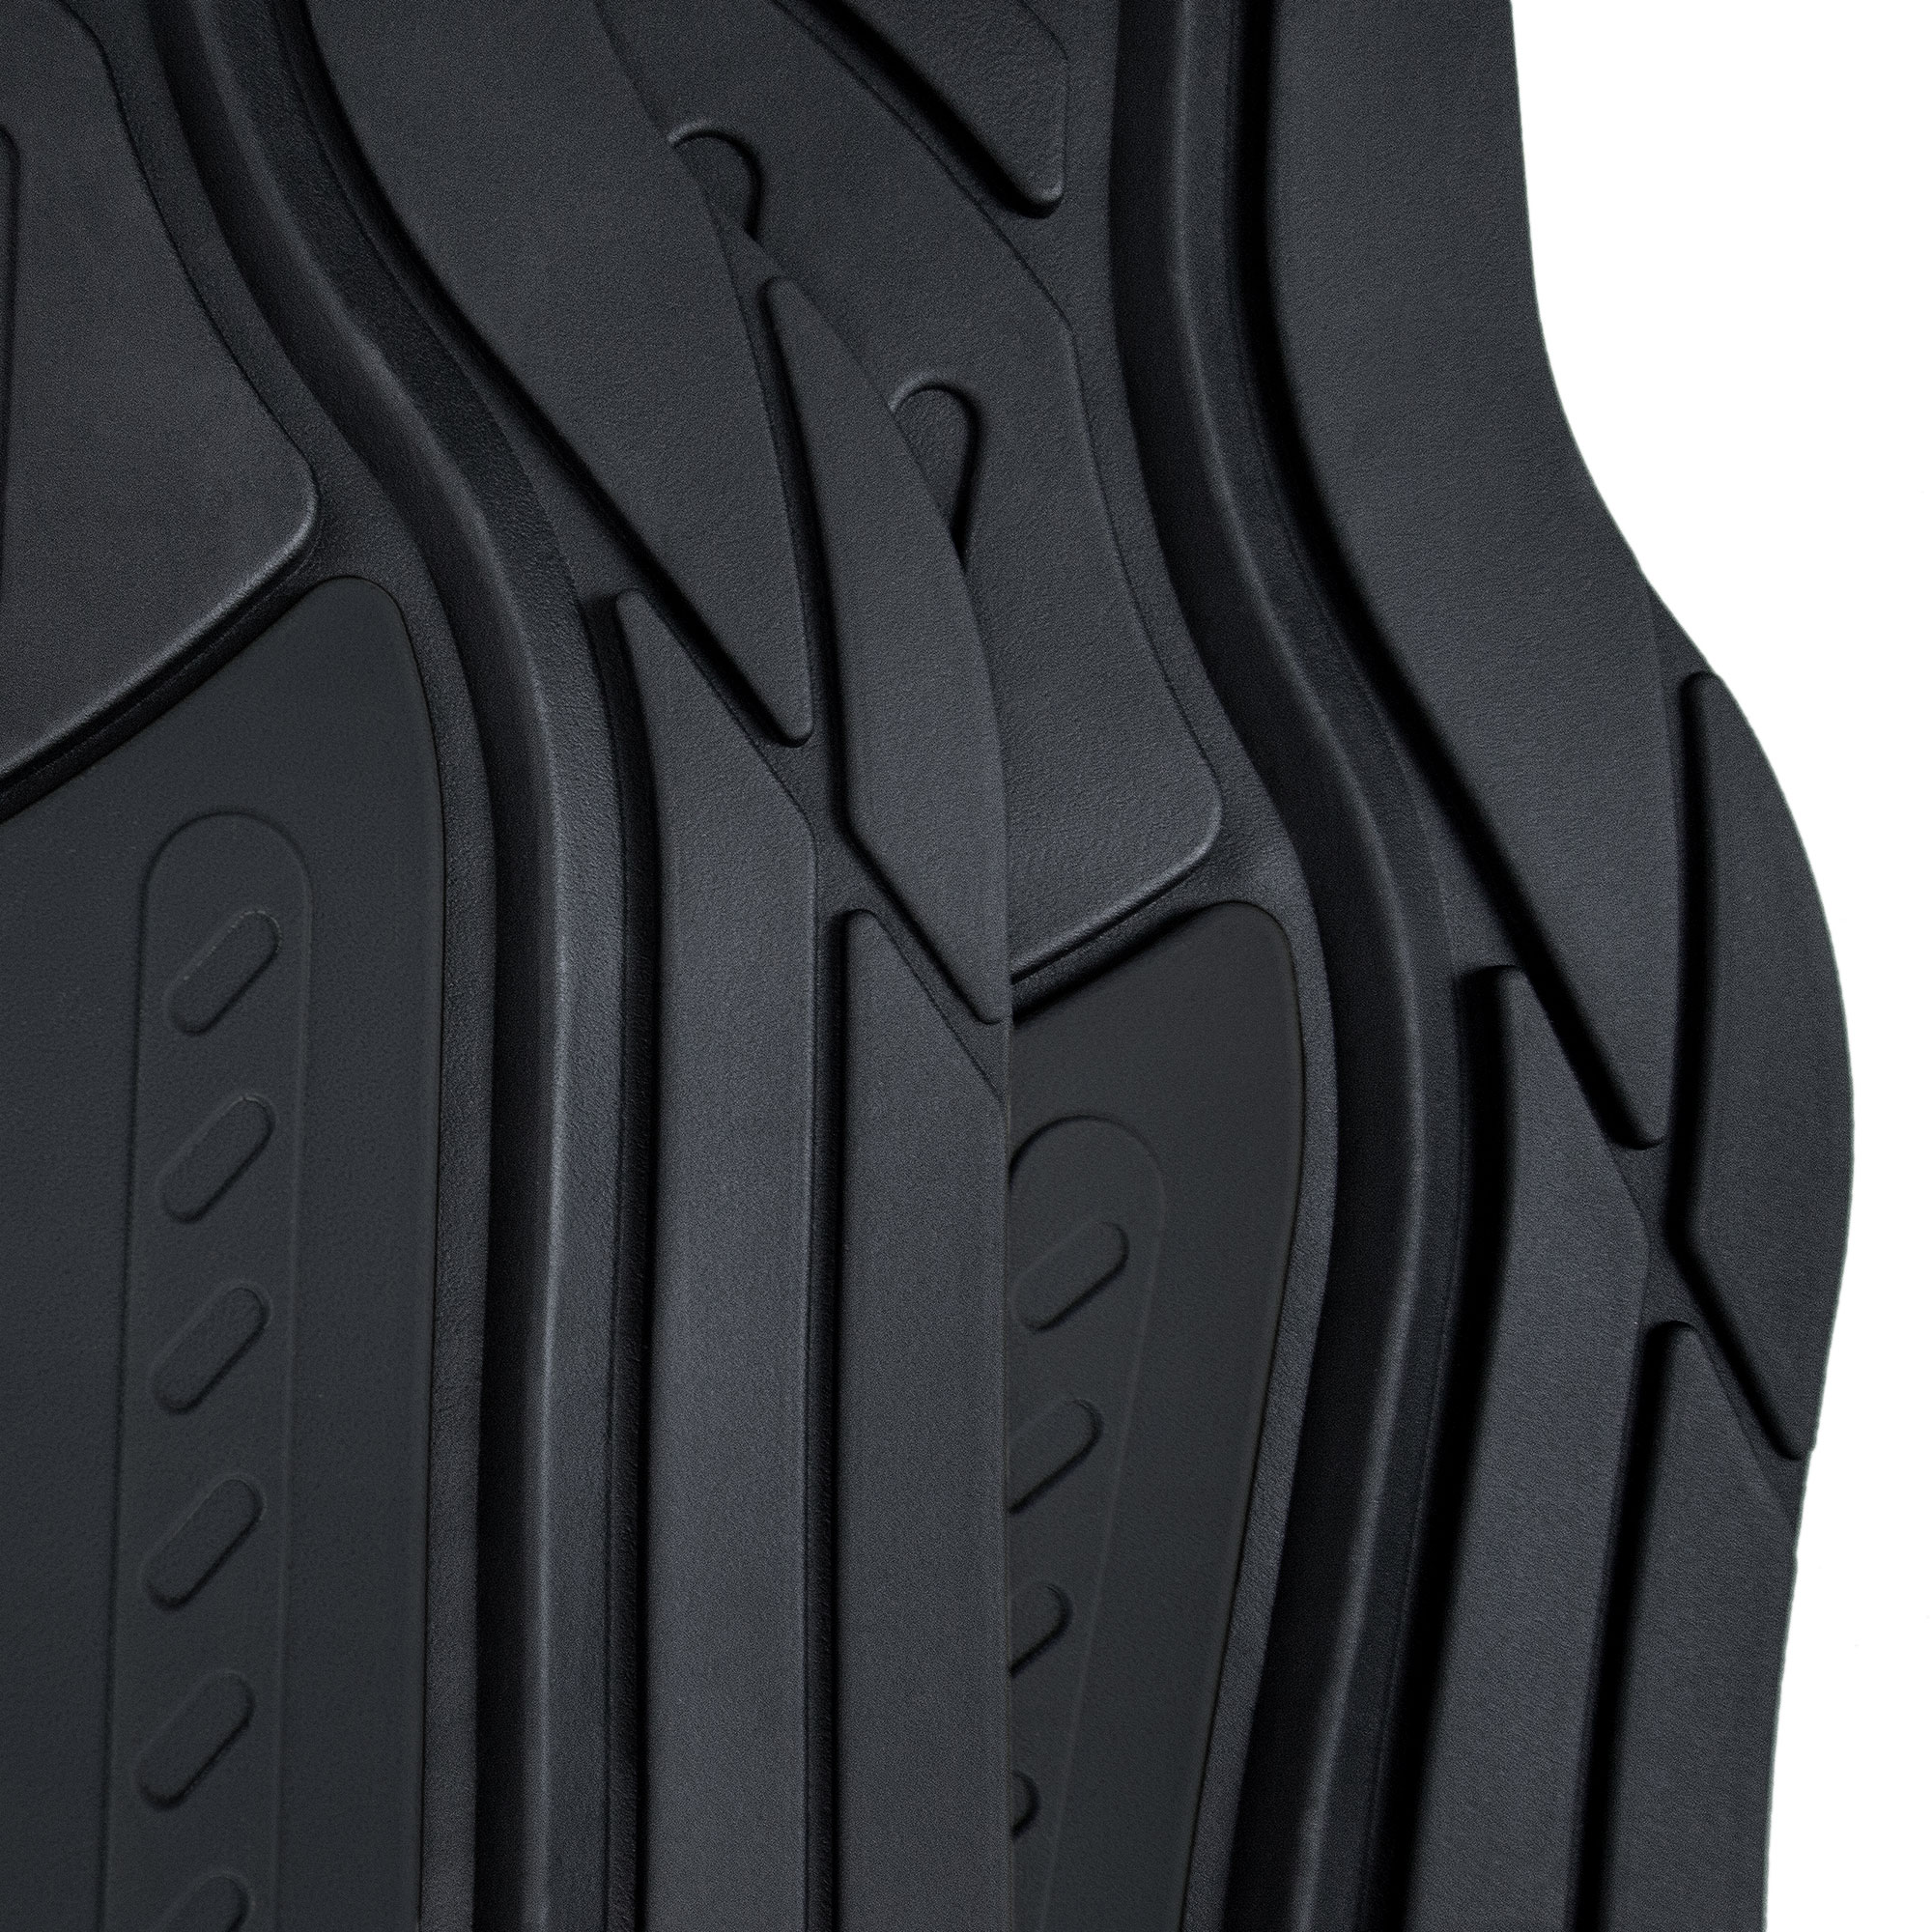 Car-Floor-Mats-for-All-Weather-Rubber-2-Tone-Design-4pc-Set-Heavy-Duty thumbnail 9